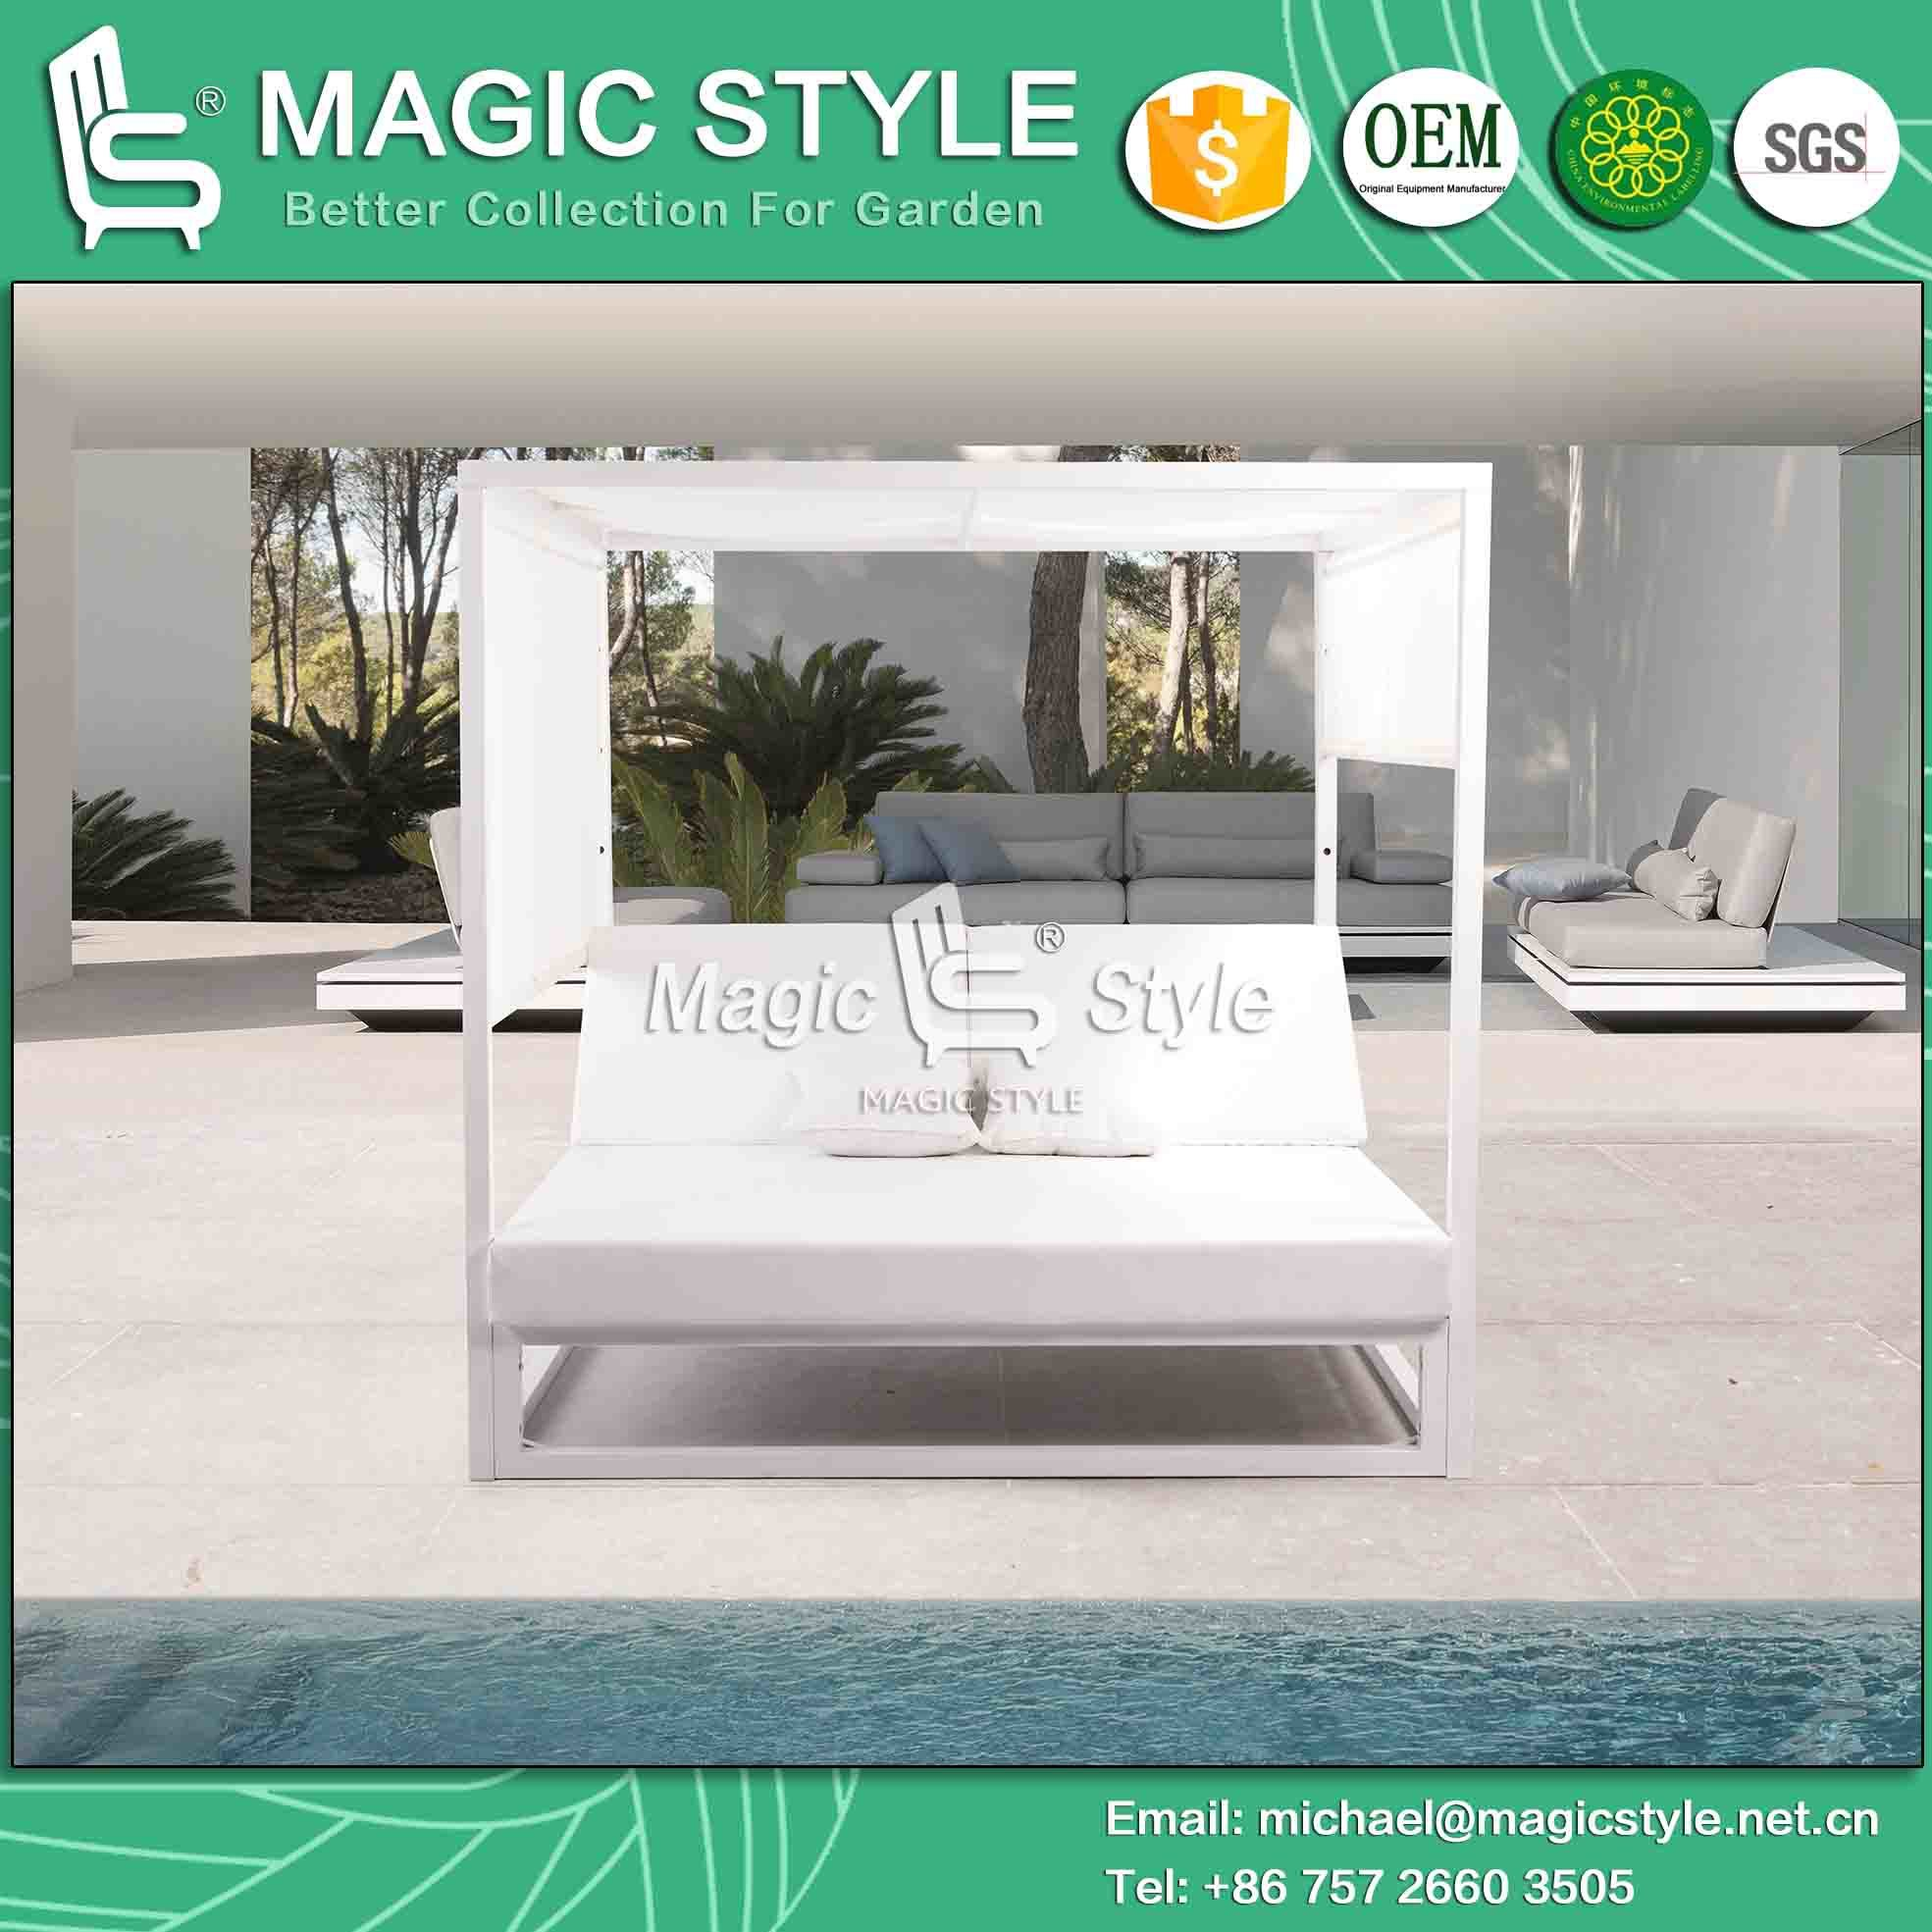 Outdoor Aluminum Daybed with PU Cushion Hotel Sunbed Garden Sunbed Leisure Sun Lounger with Curtians Modern Daybed